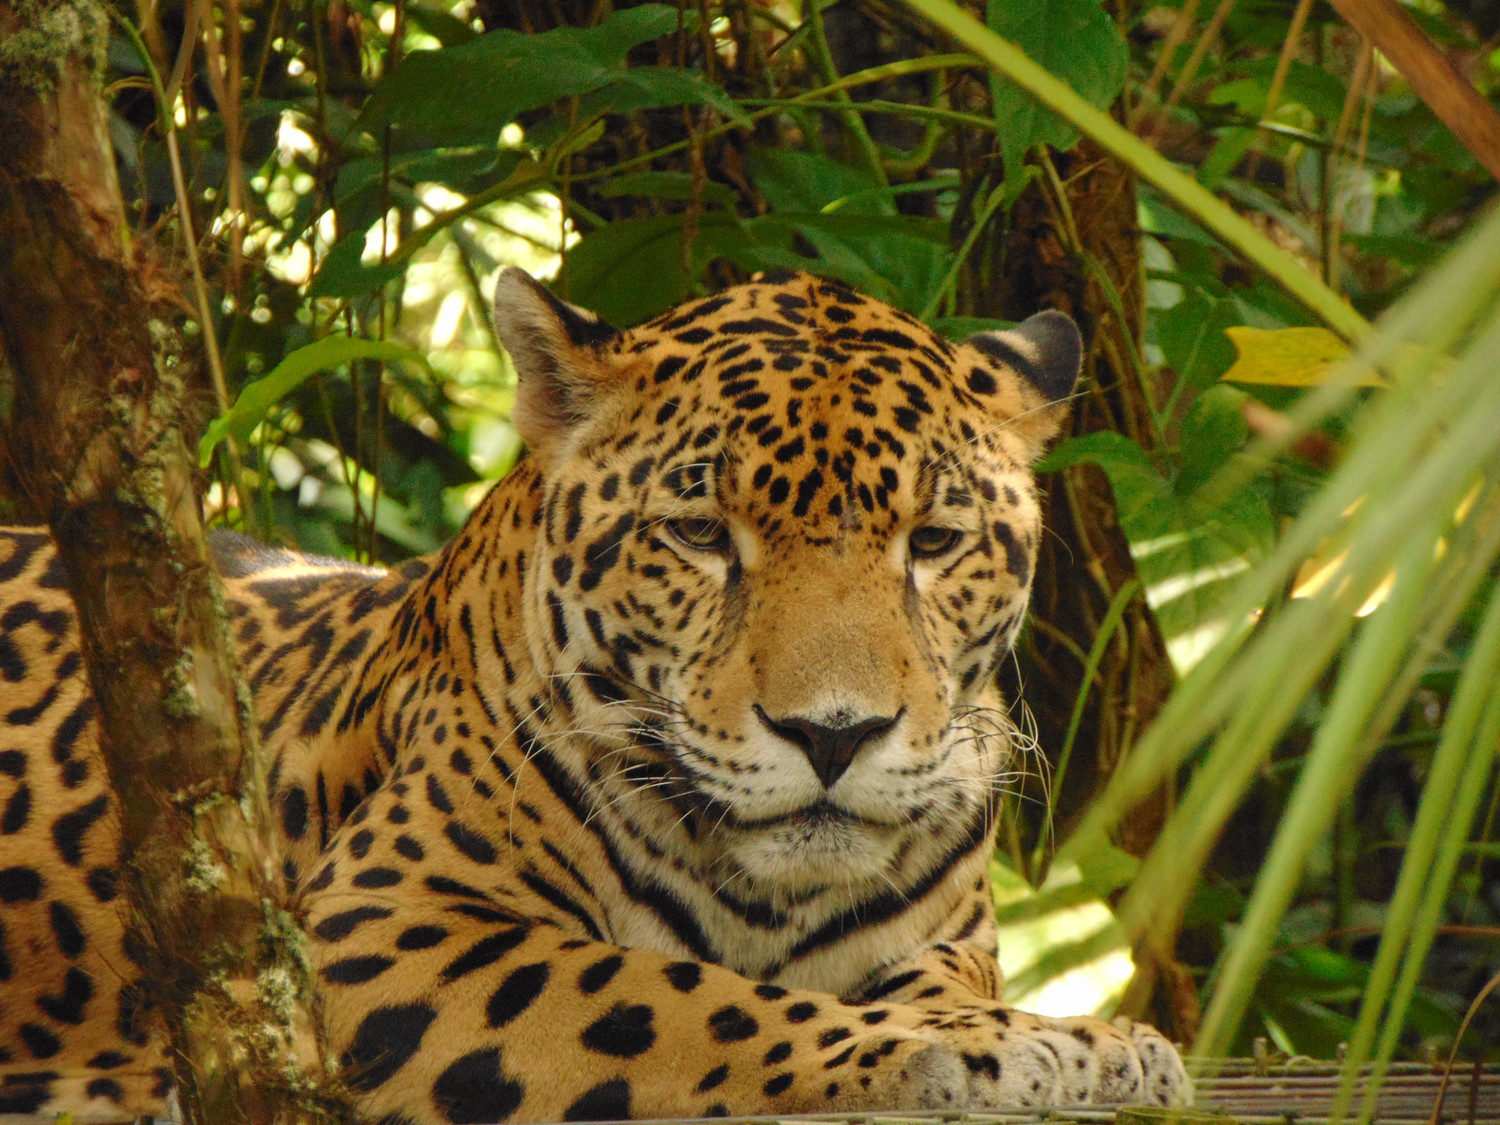 A jaguar named Junior sat peacefully among the trees in the Belize Zoo.